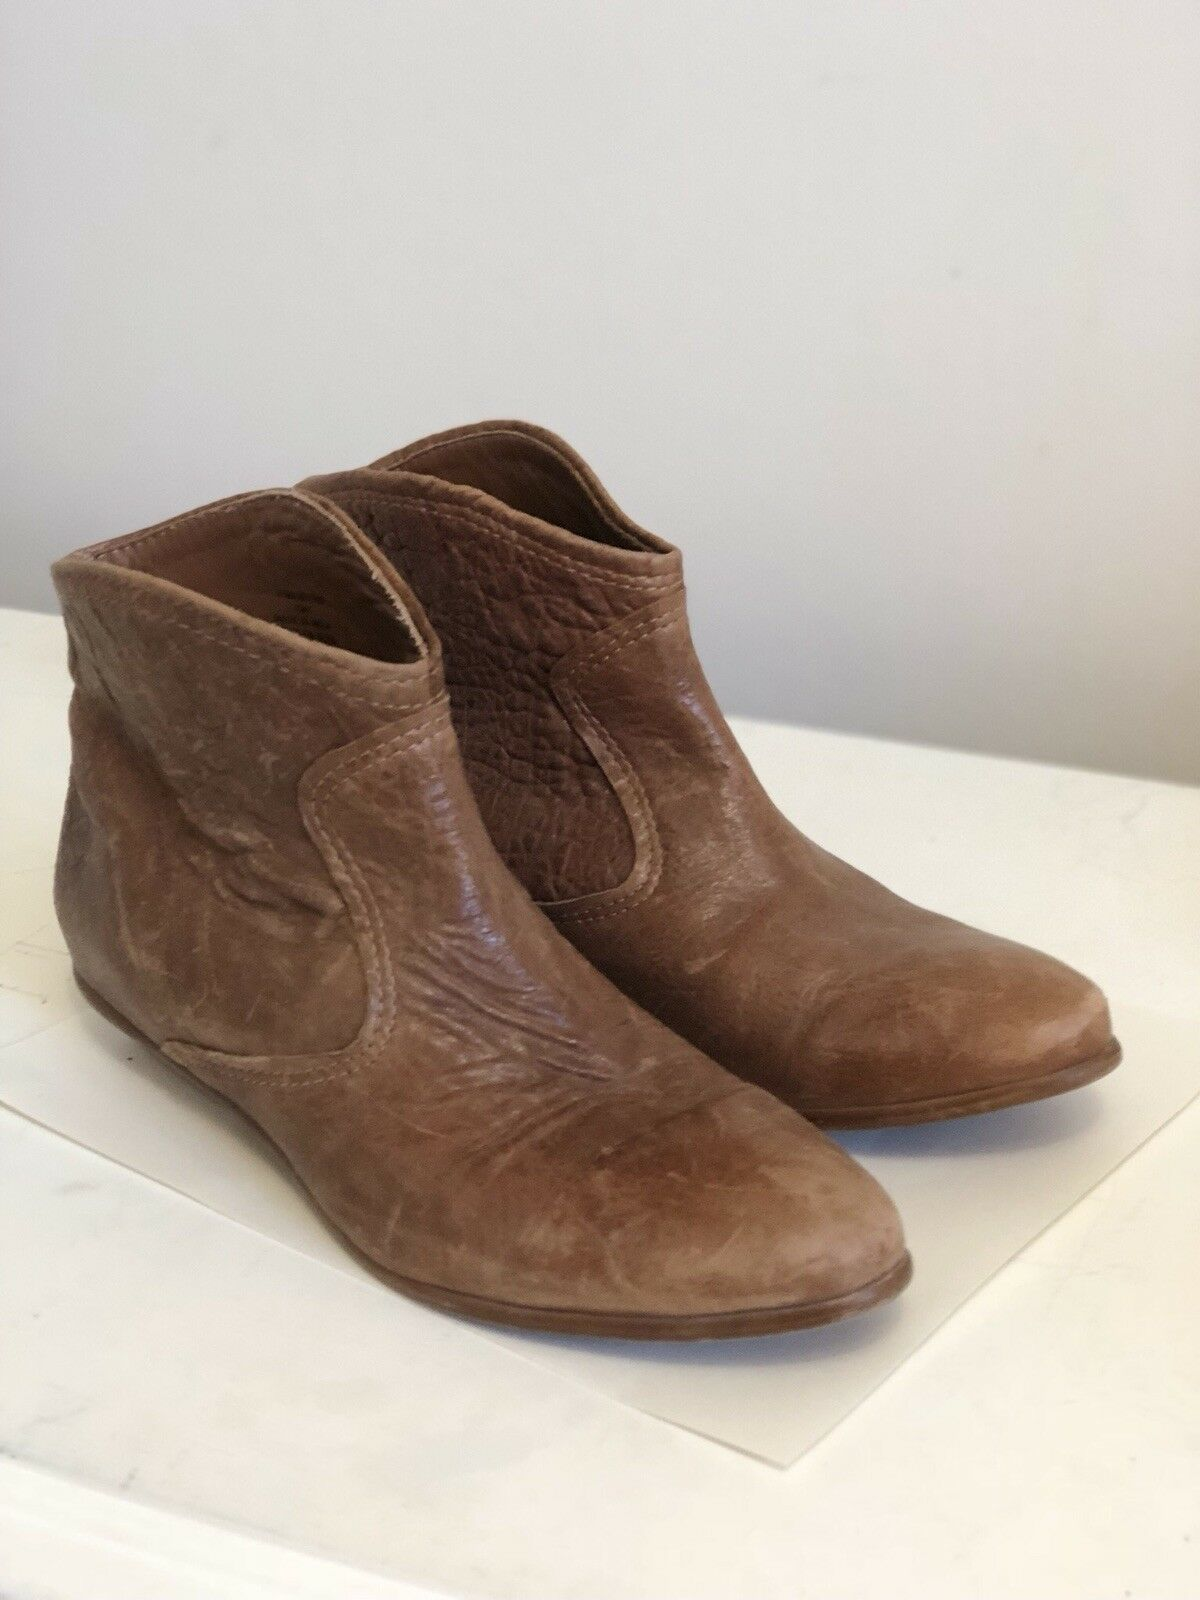 ZARA Cowboy Ankle Boots Western Leather Cognac Booties Size 40